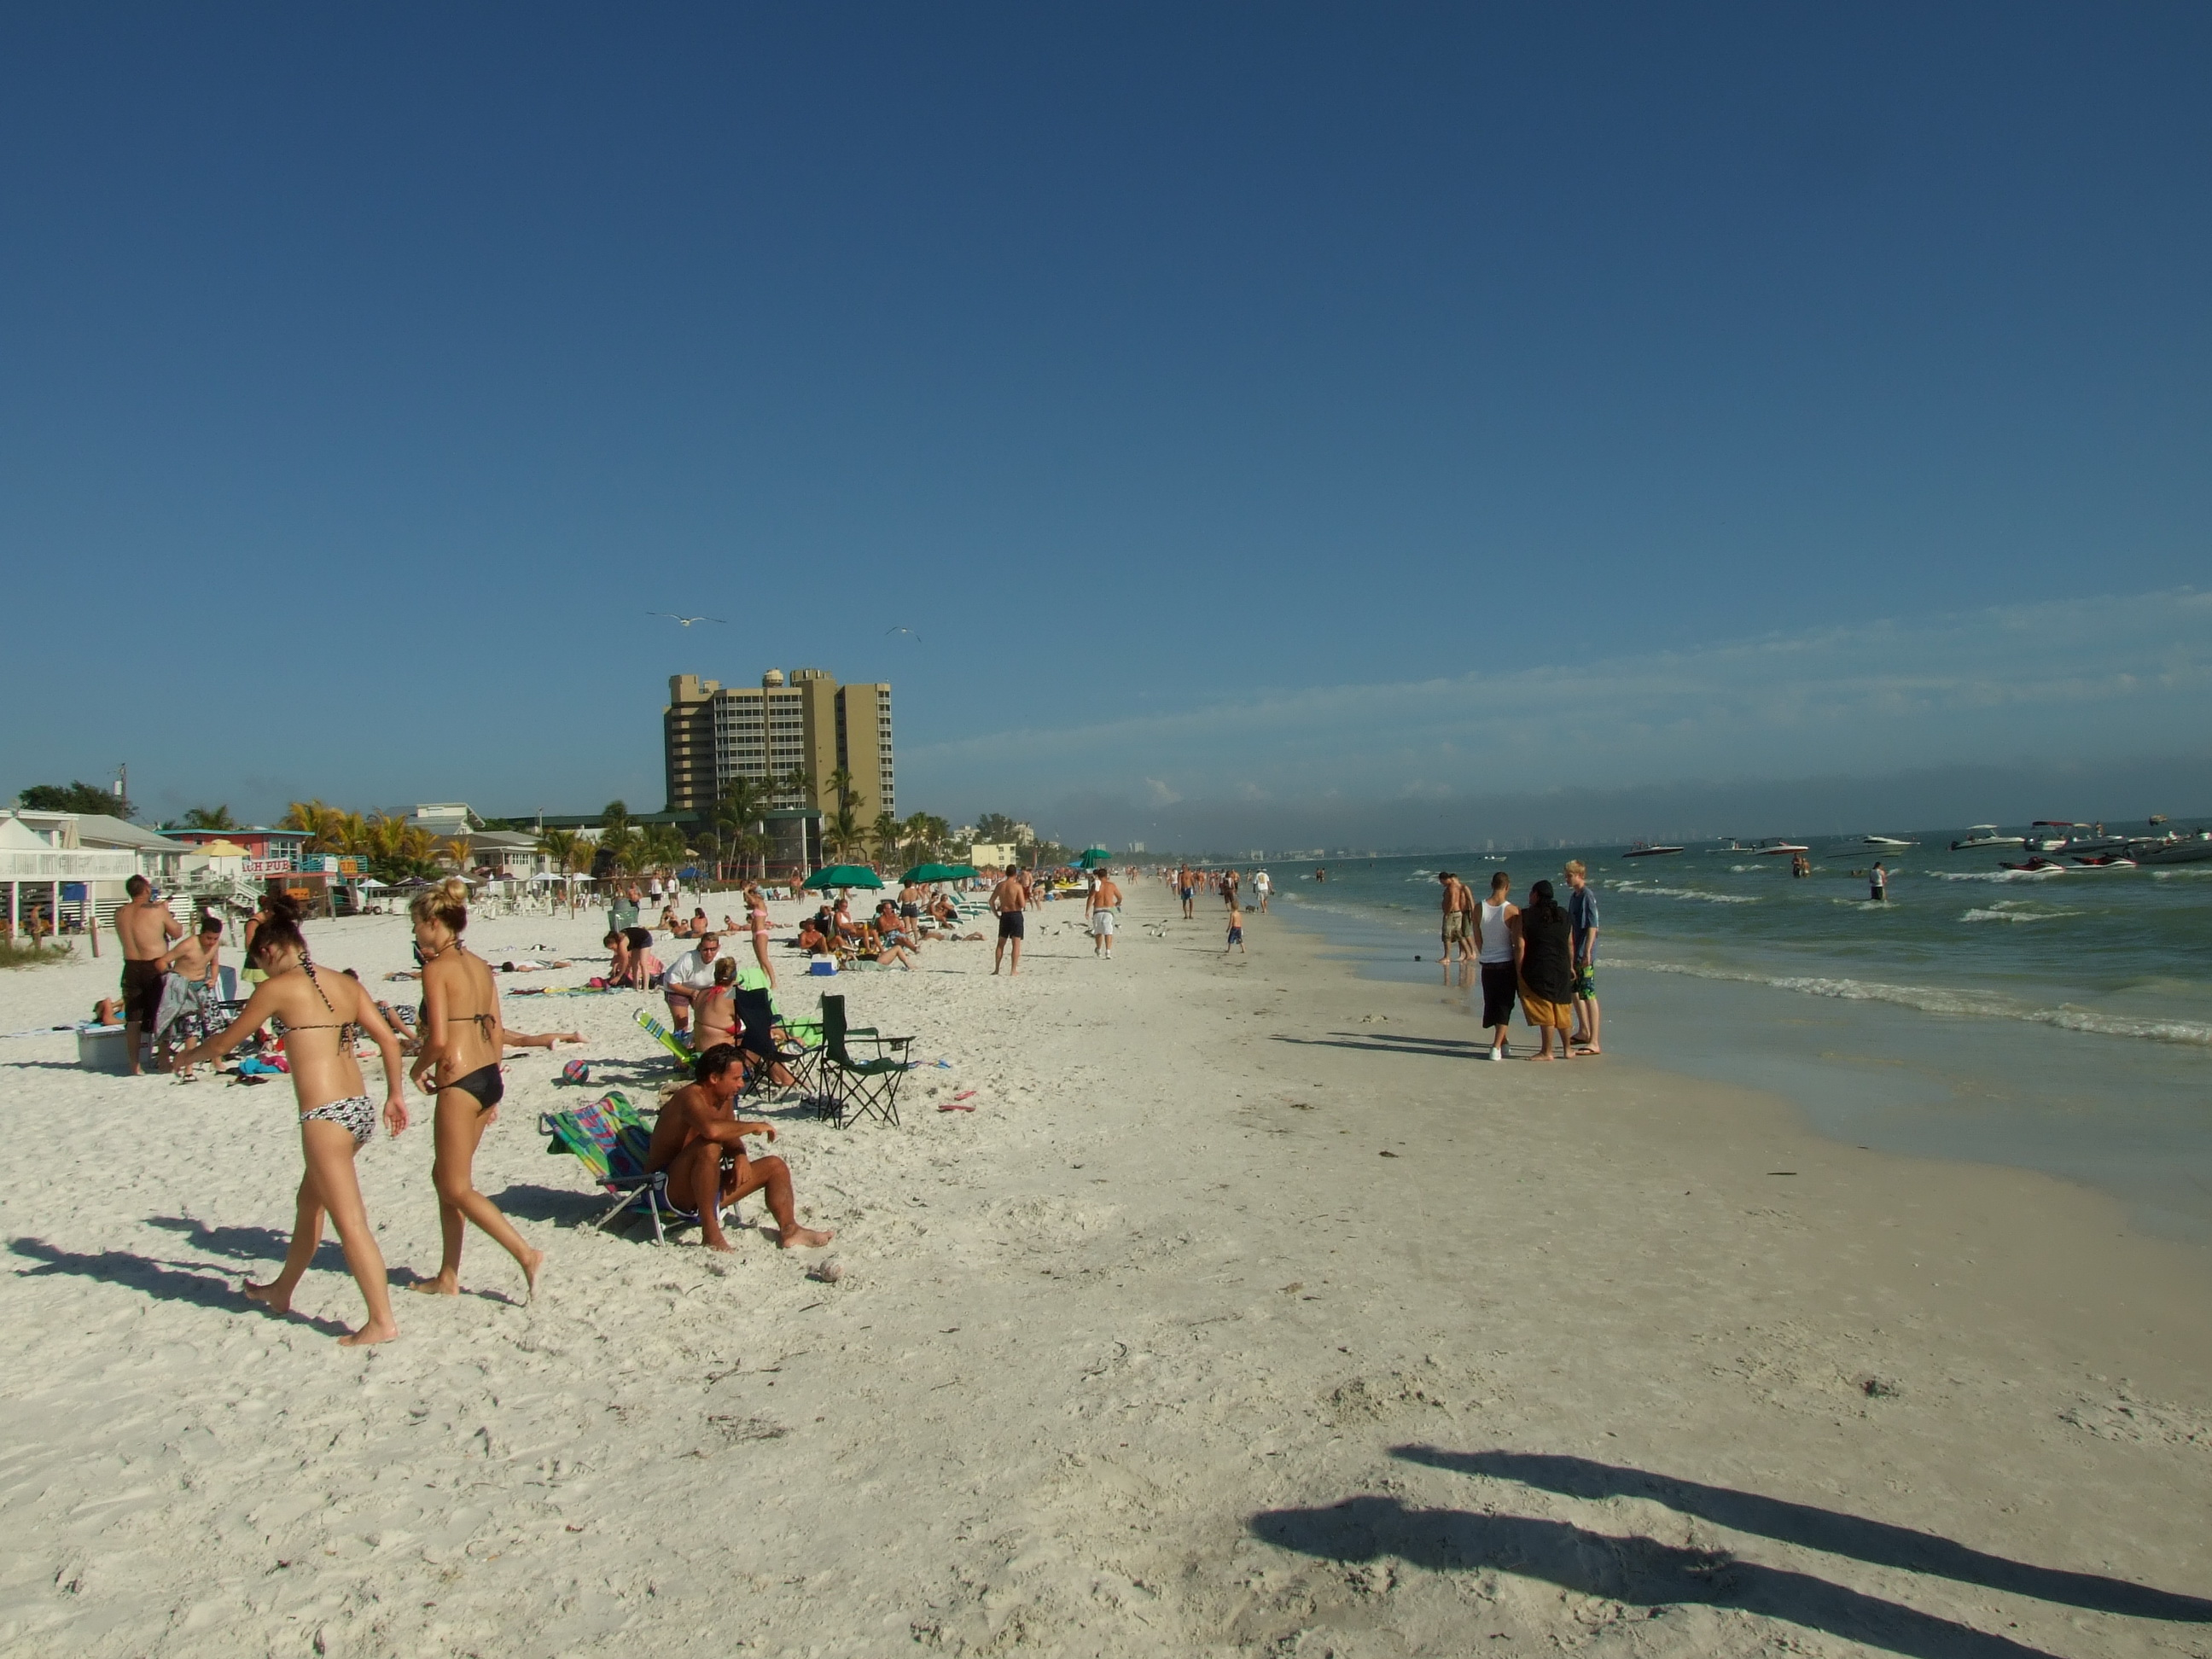 Bestand Florida Fort Myers Beach Jpg